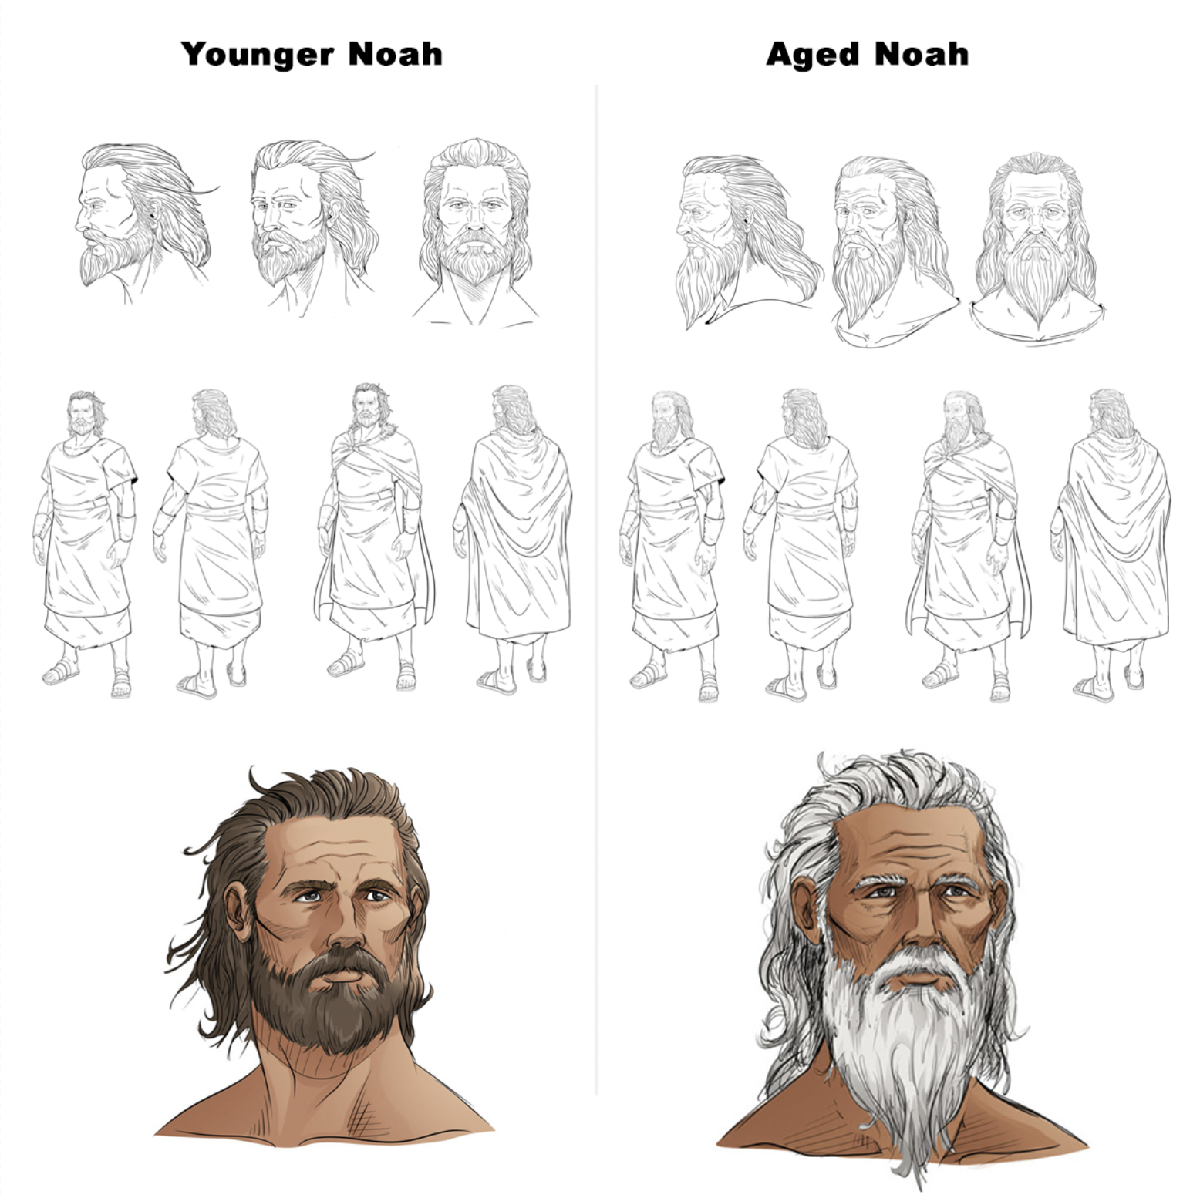 iBIBLE image of Noah showing character sketches and then final images of Noah younger and him aged.